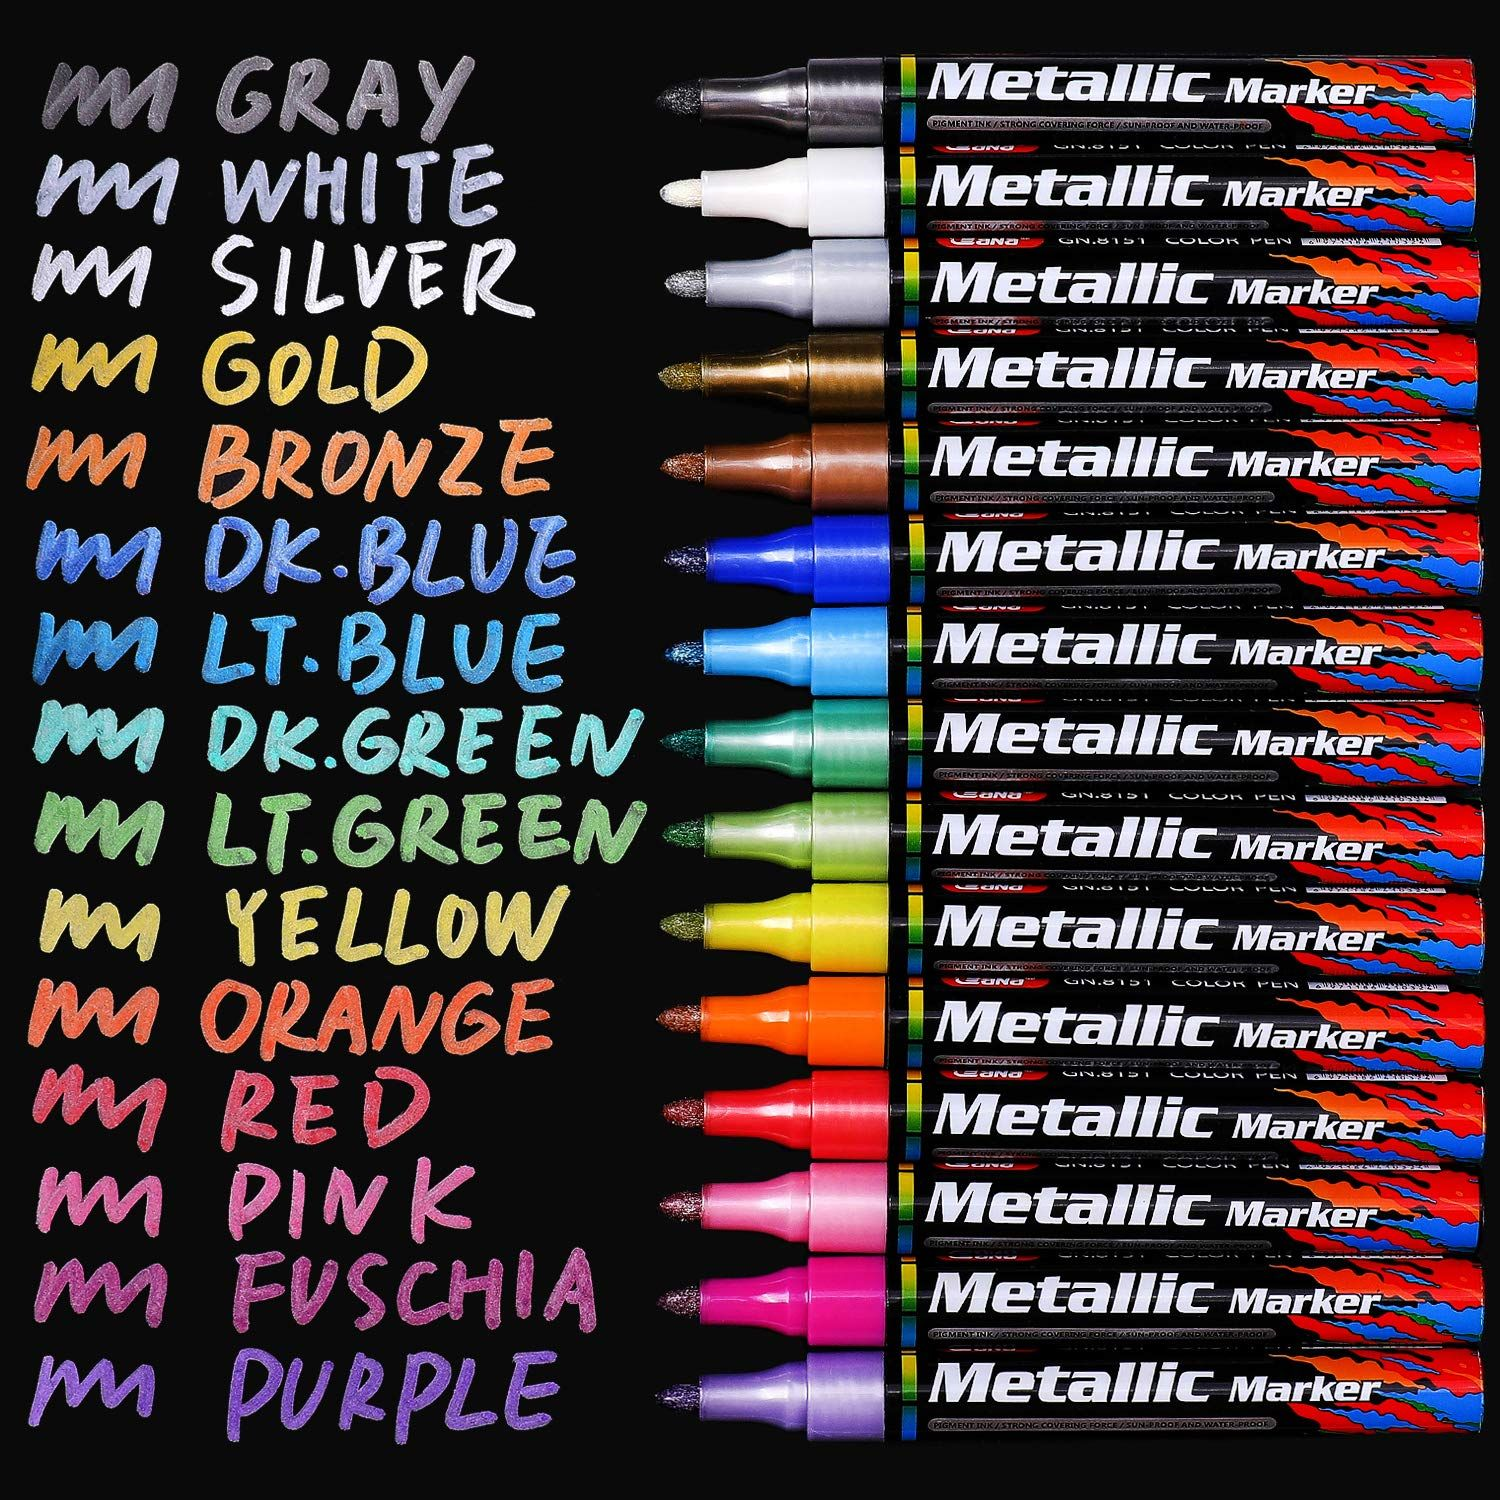 Metallic Markers Pens White Gold Paint Marker Pen For Kids Adults Including 10 Colors Medium Tips 2 Mm Line W Paint Marker Pen Glitter Paint Pens Paint Marker